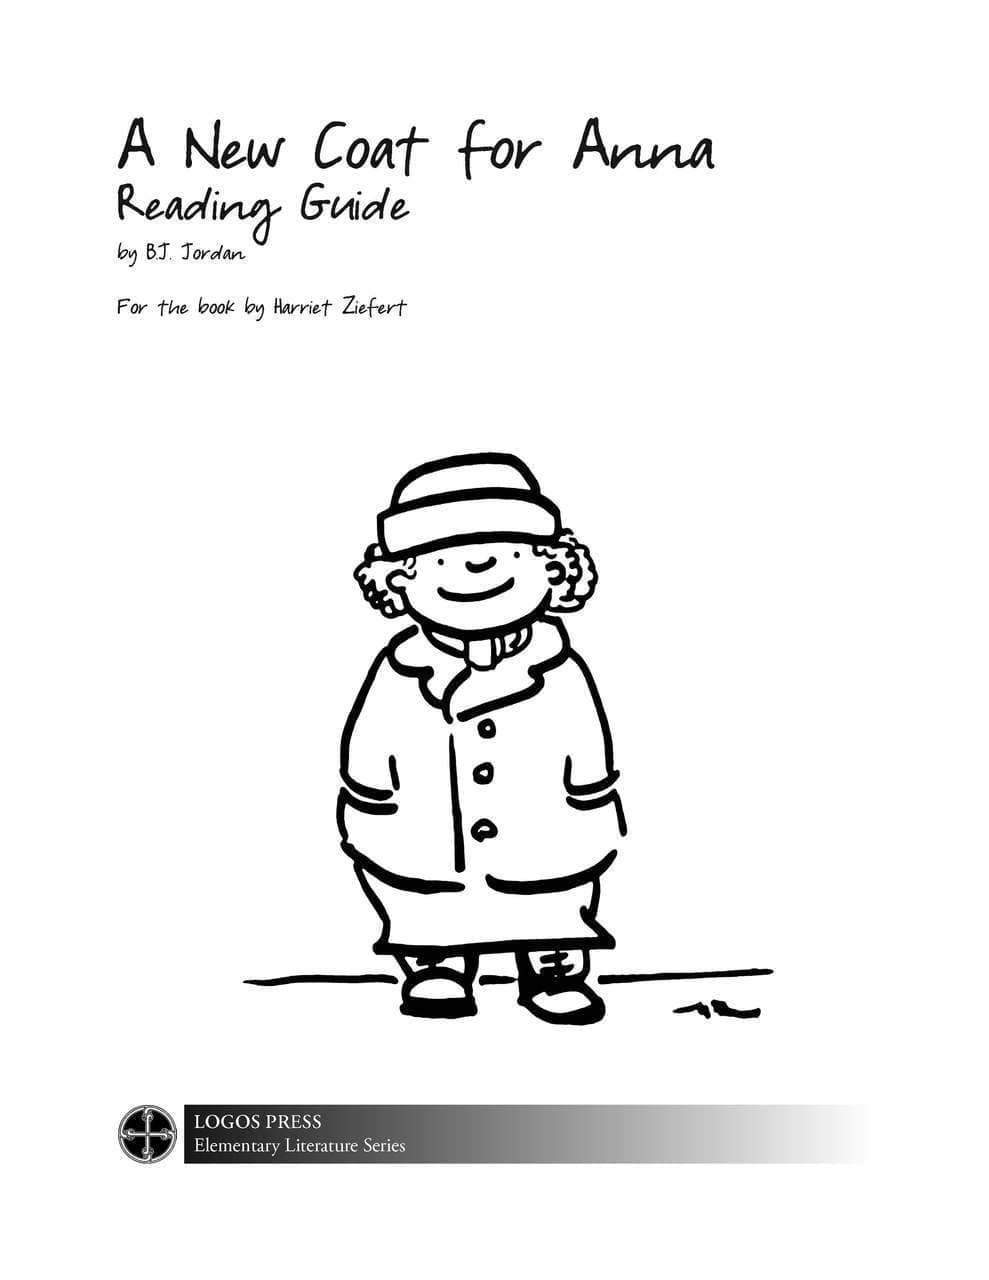 A New Coat for Anna – Reading Guide (Download)